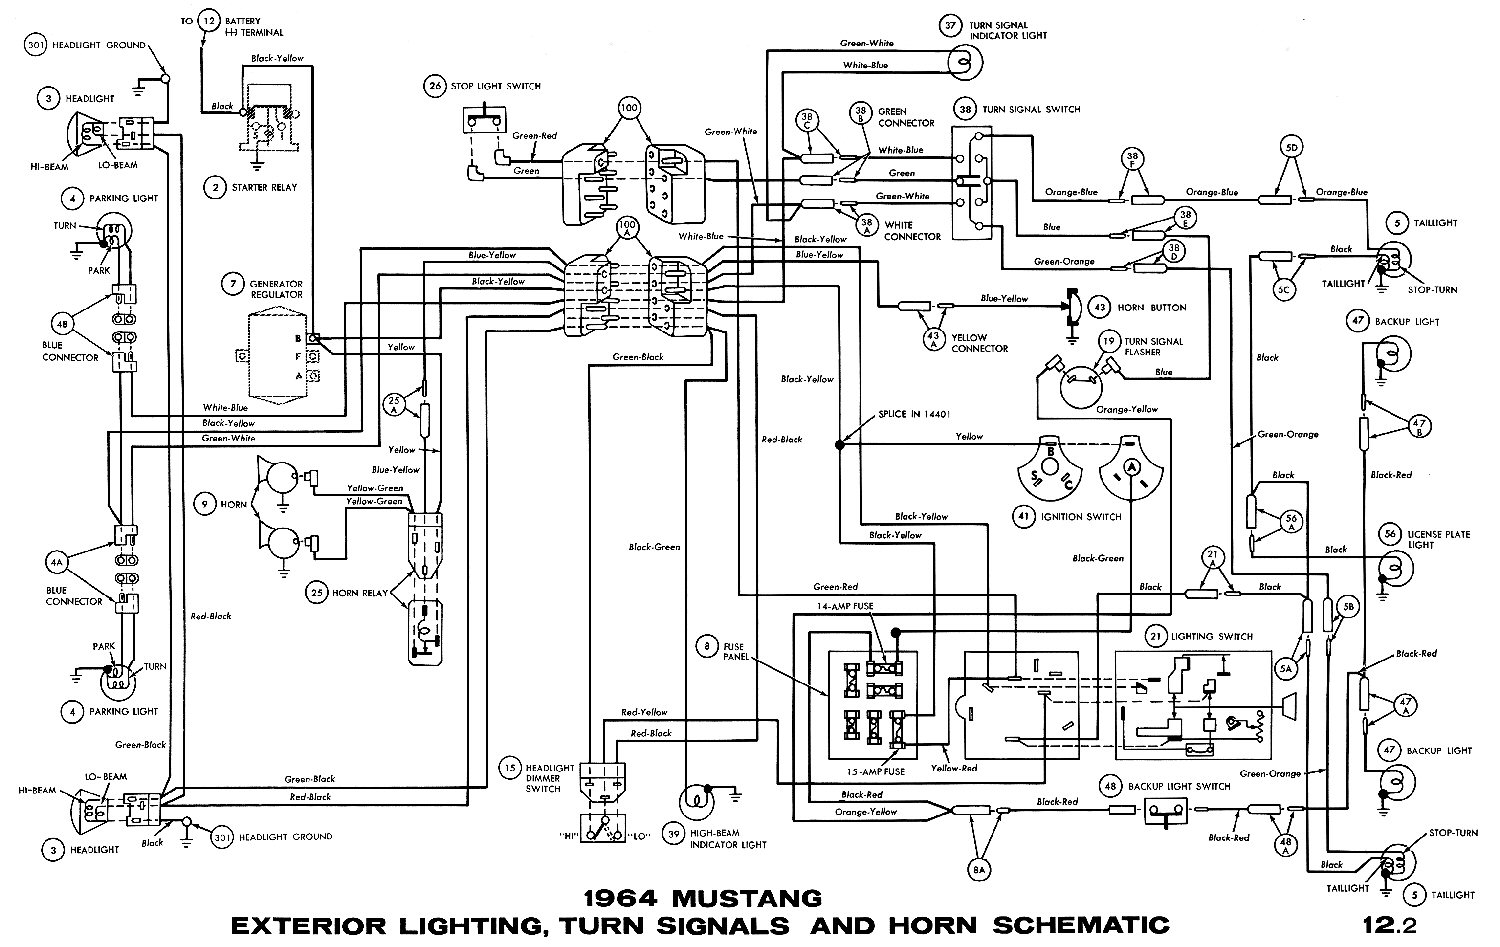 Ford F100 Wiring Diagrams Car Pictures likewise 1954 Ford F100 Wiring Diagram together with 69 Ford Headlight Switch Wiring Diagram additionally 1951 F1 Ford Truck Turn Signal Wiring Diagrams Free furthermore 1990 Ezgo Wiring Diagram. on 1950 ford headlight switch wiring